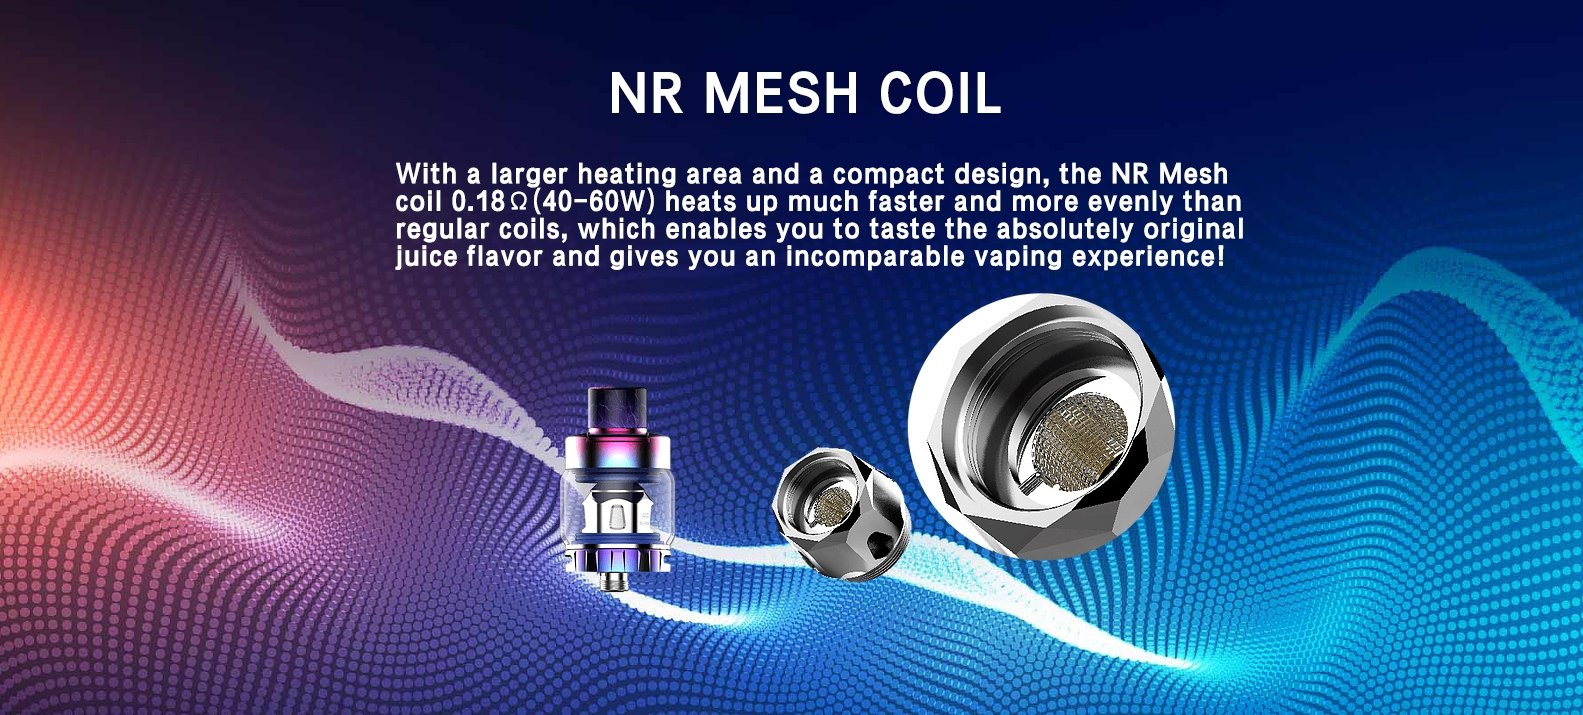 Kanger XLUM Kit Features NR mesh coil